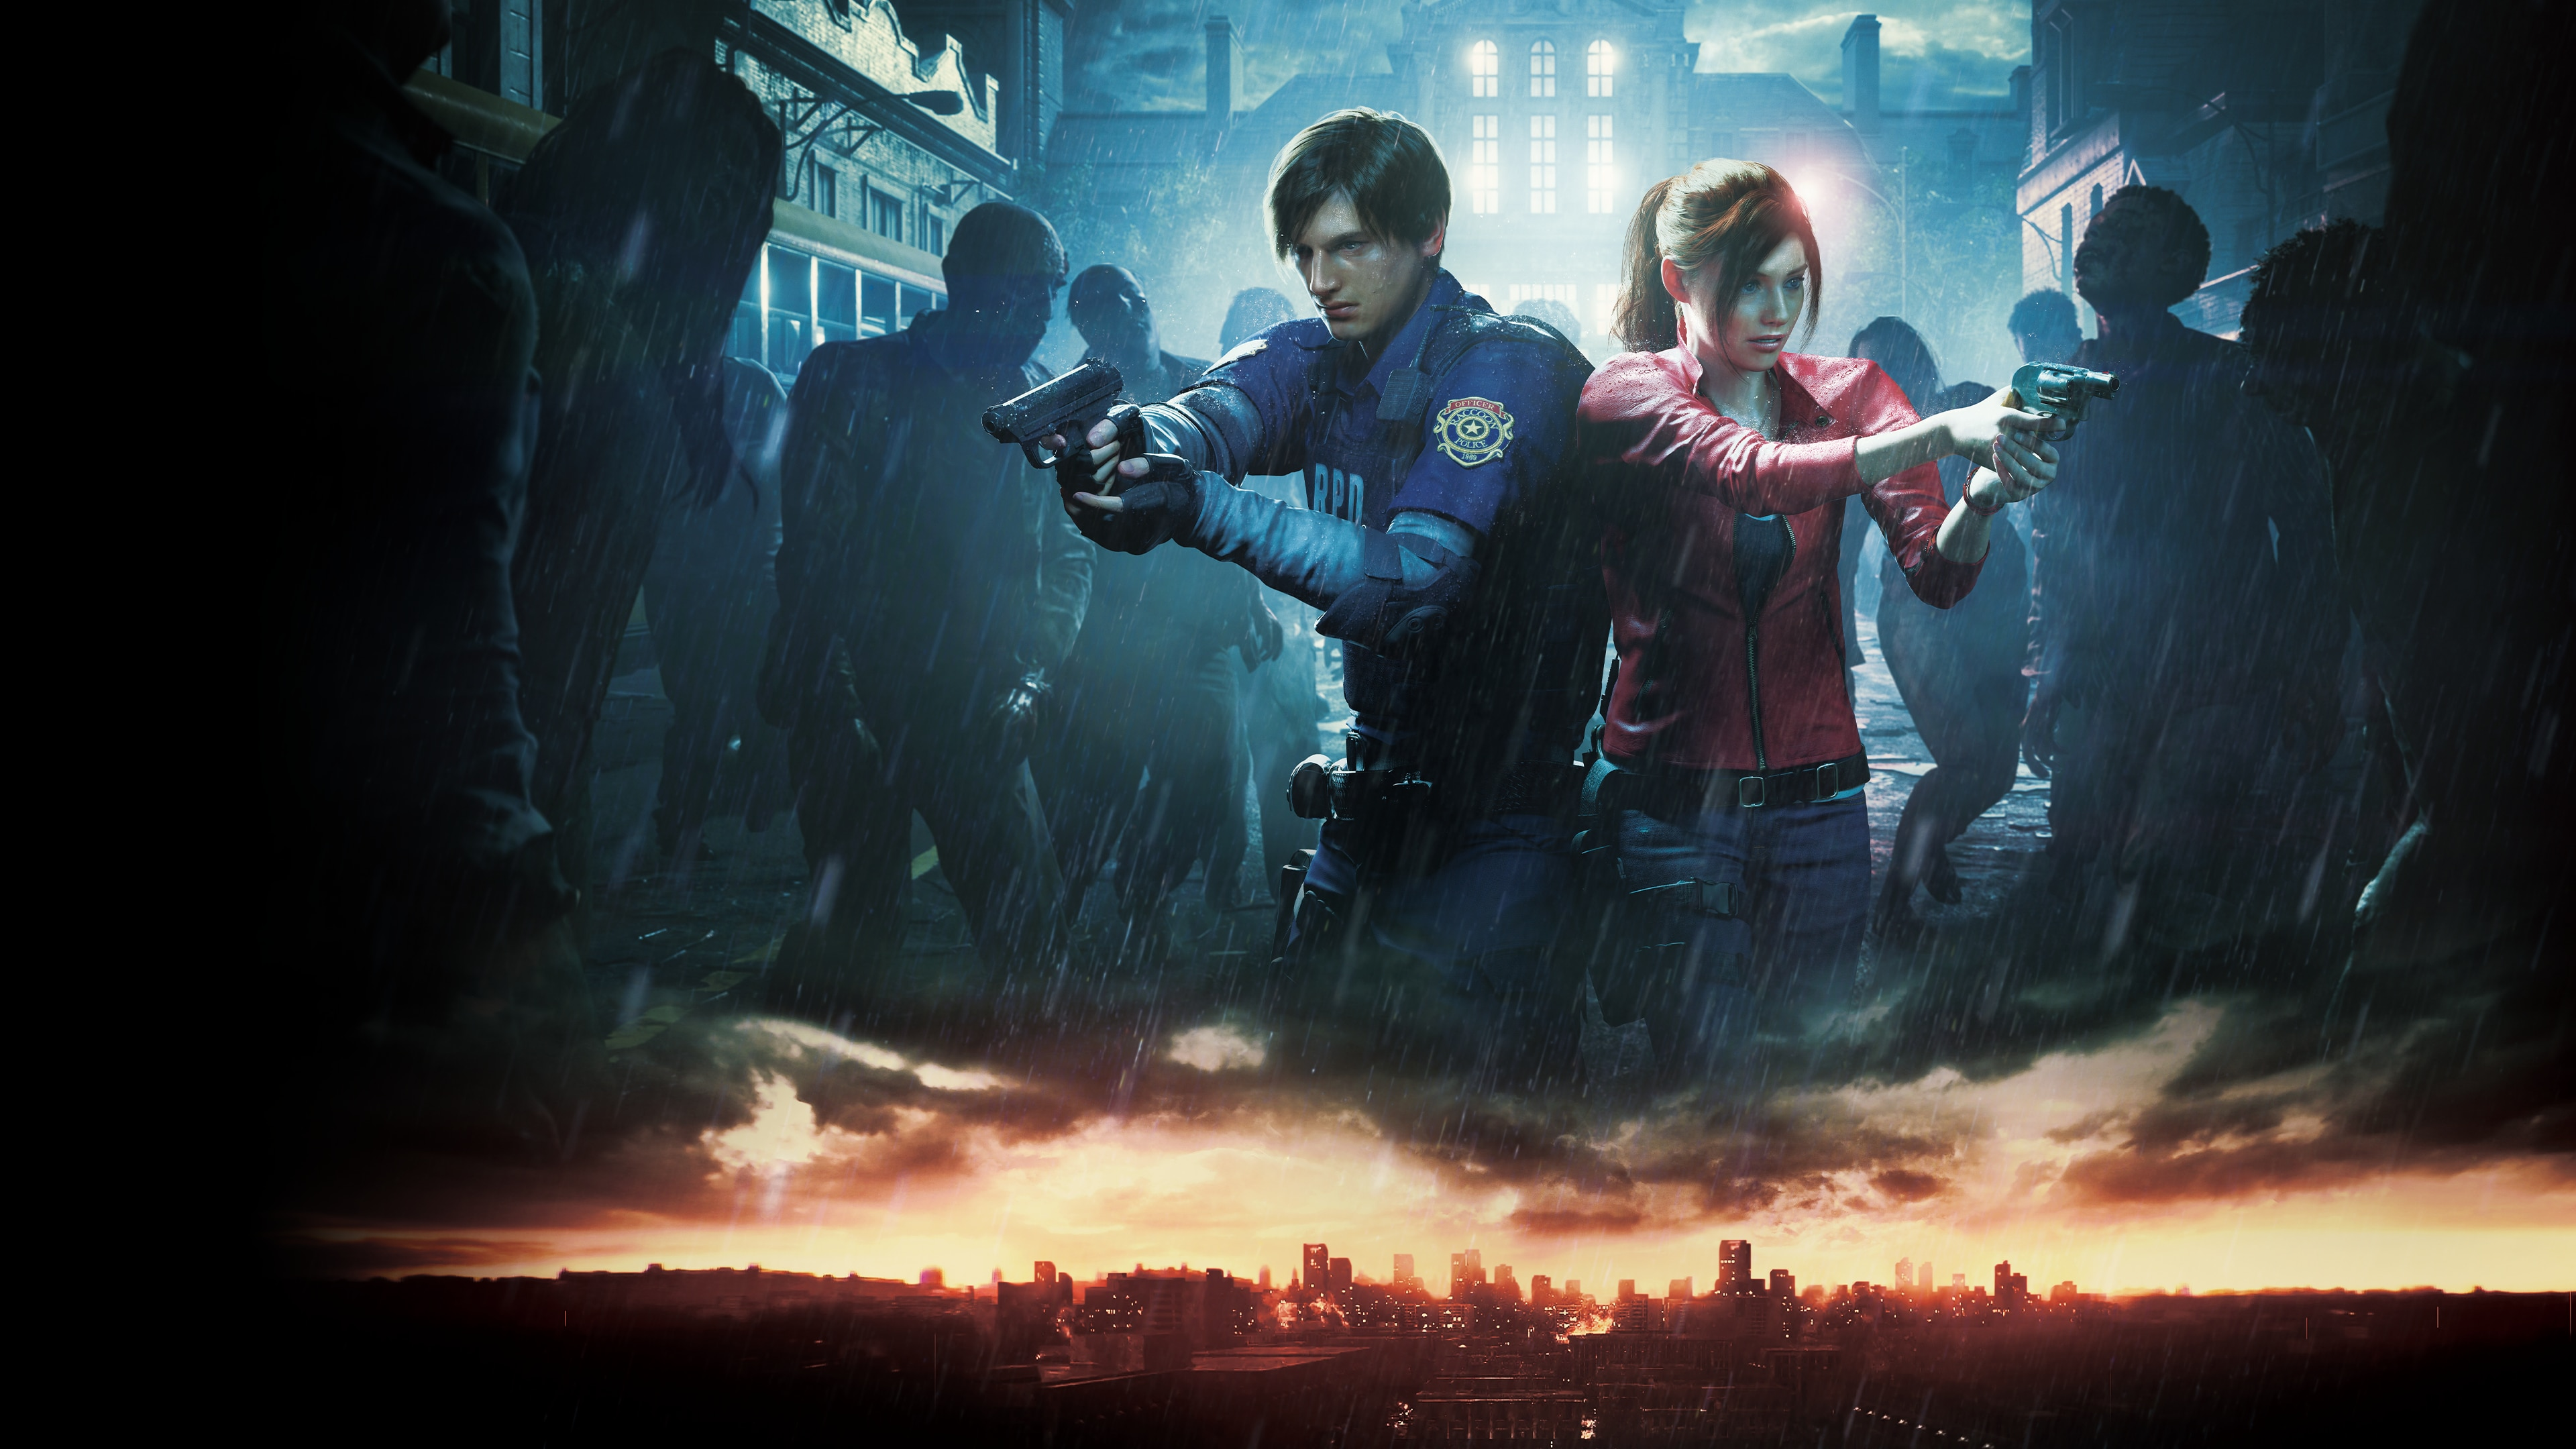 RESIDENT EVIL 2 (English/Chinese/Korean/Japanese Ver.)